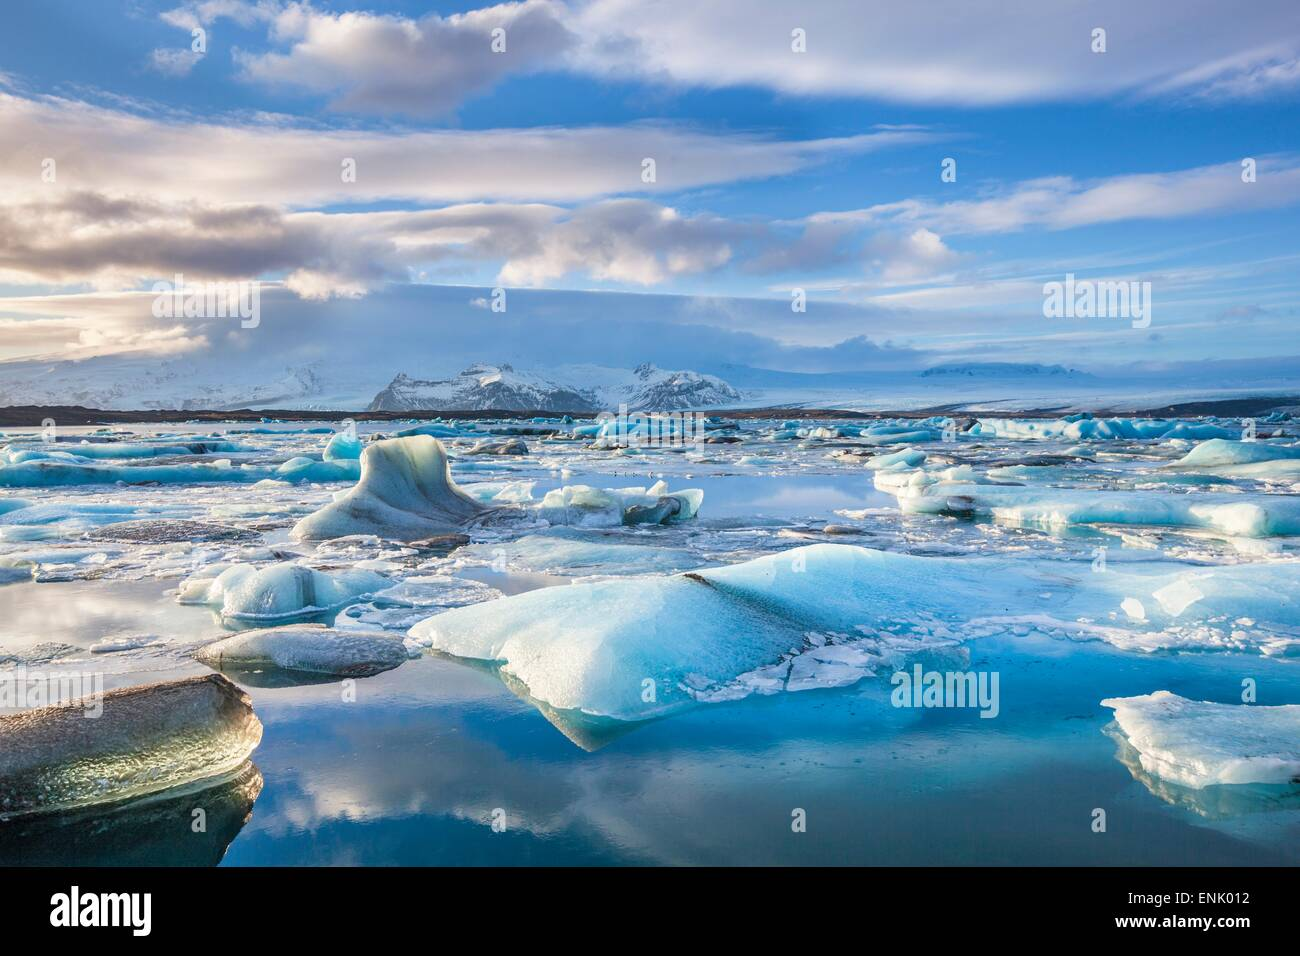 Mountains behind icebergs locked in the frozen water of Jokulsarlon Lagoon, Jokulsarlon, southeast Iceland, Iceland - Stock Image